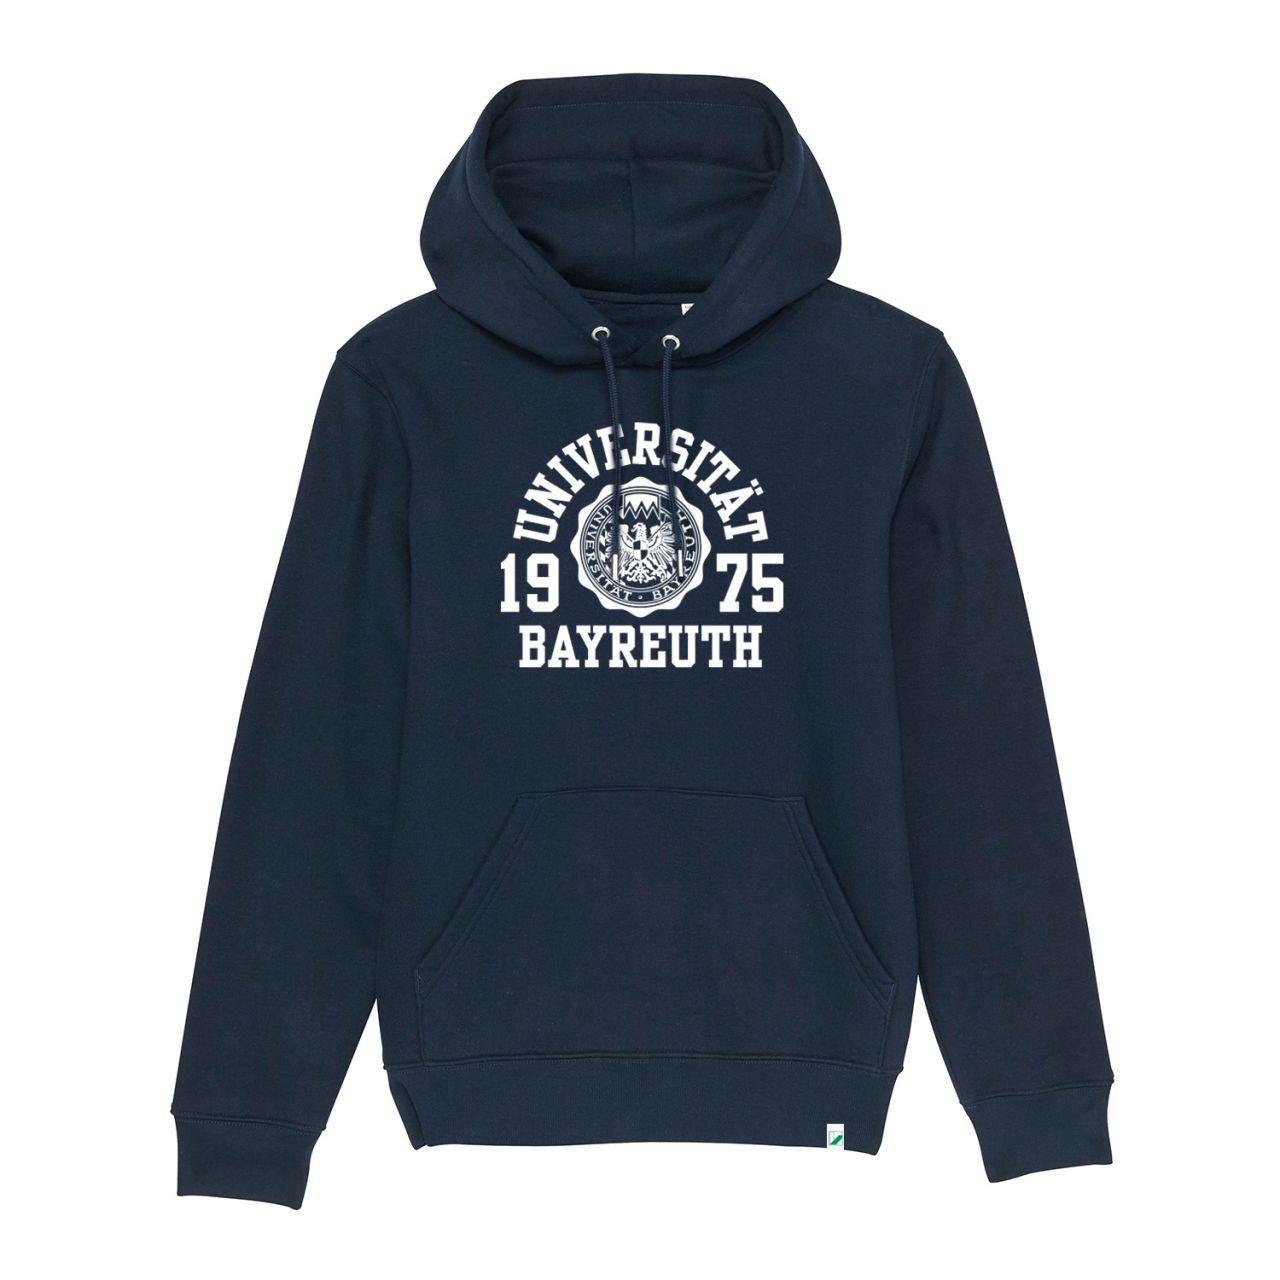 Unisex Organic Hooded Sweatshirt, navy, marshall